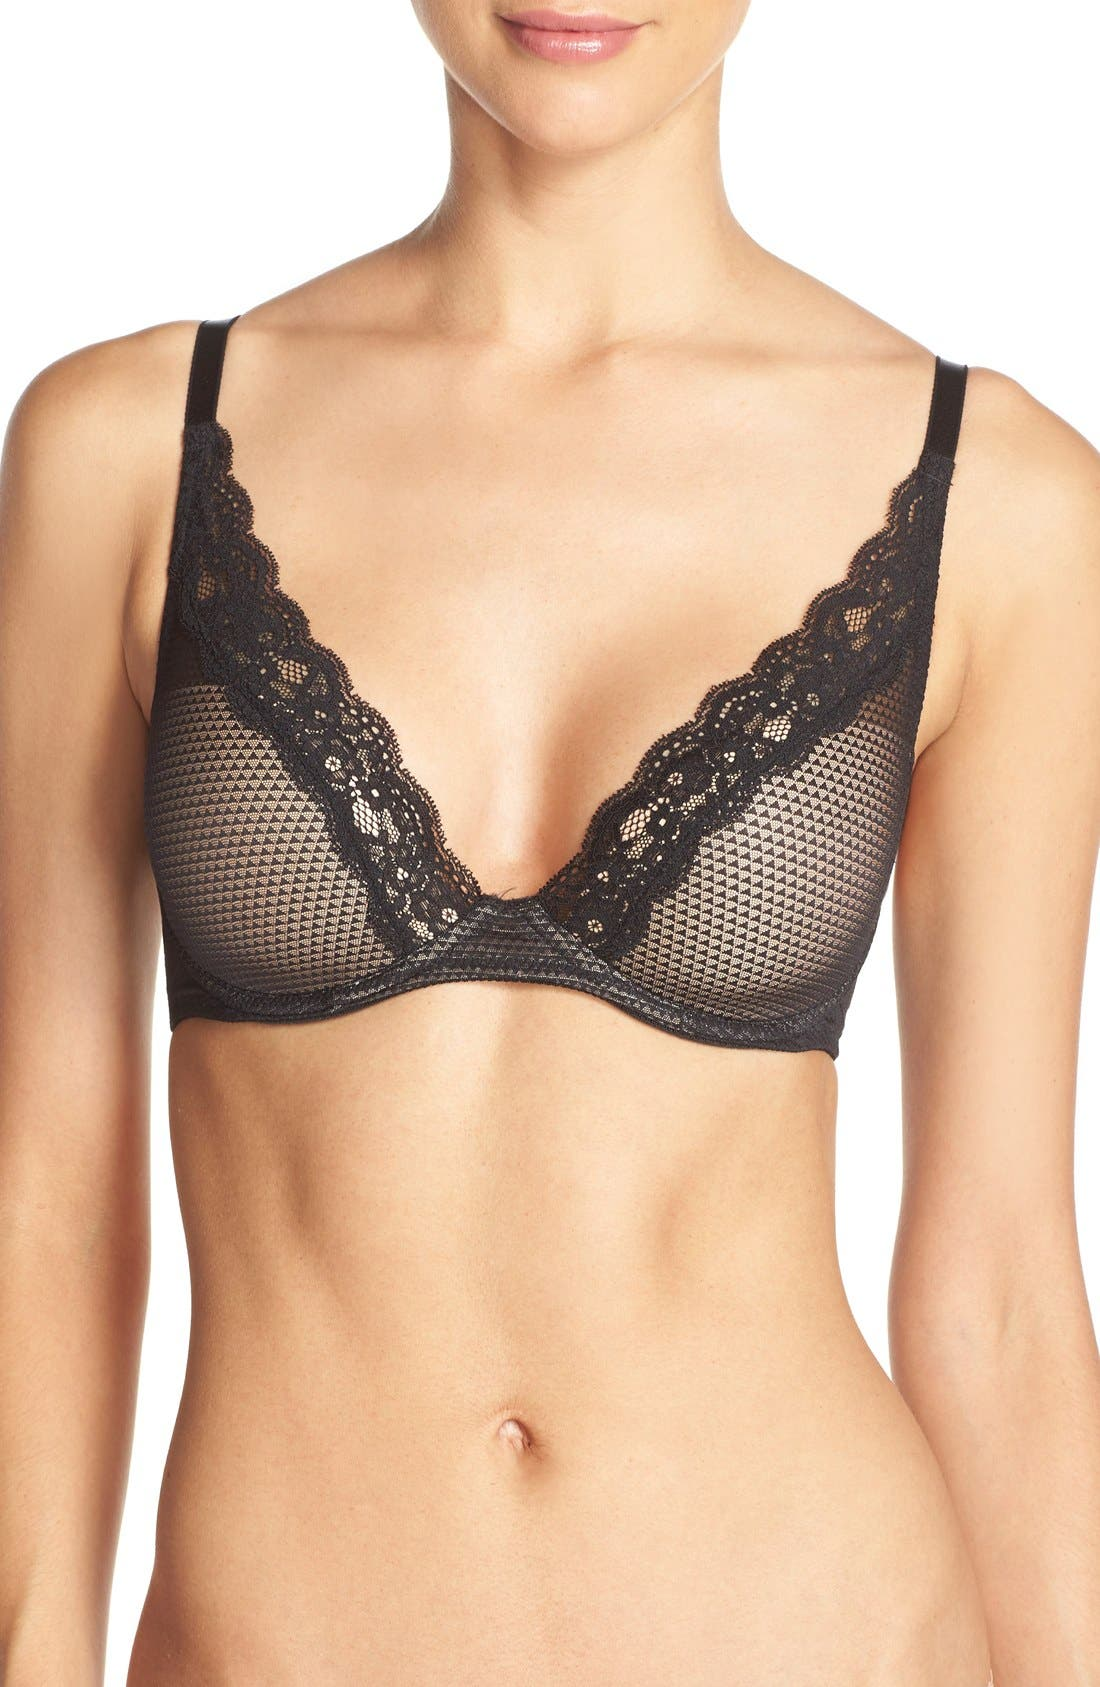 Passionata by Chantelle 'Brooklyn' Underwire T-Shirt Bra